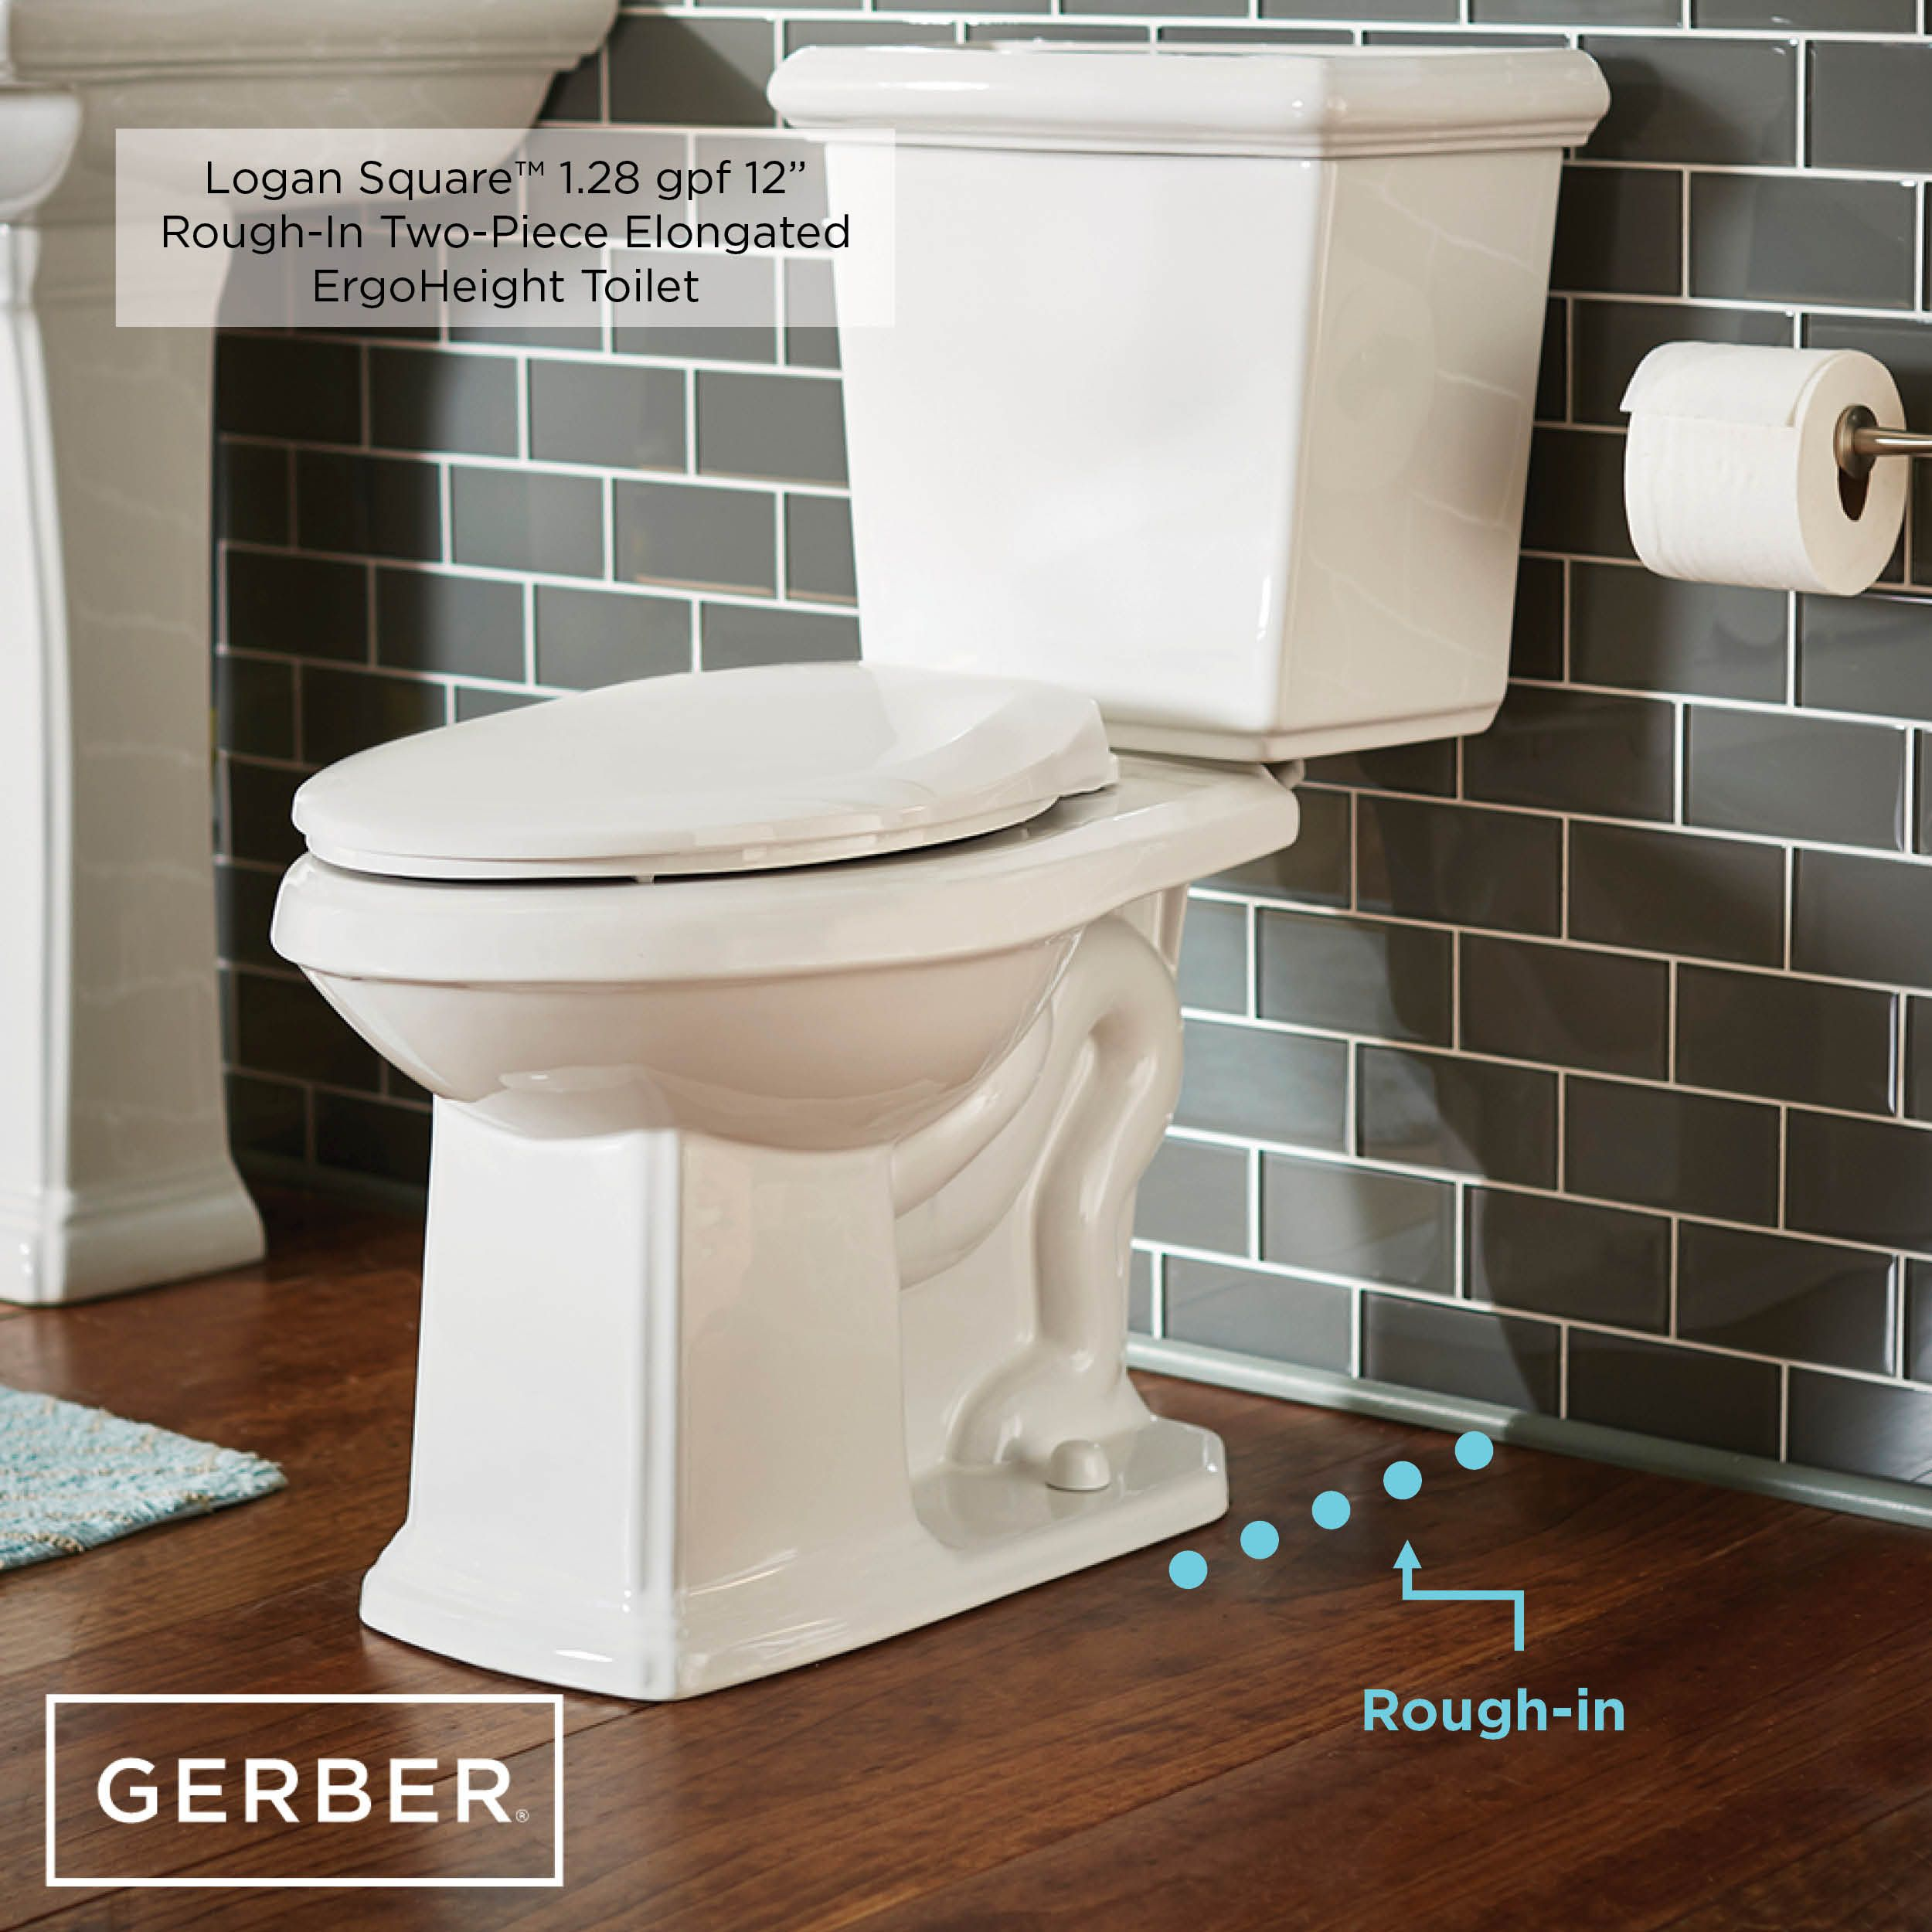 Find The Loo That S Right For You The Distance From The Bolts That Anchor The Bowl To The Floor To The Wall Behind You Bidets Bidet Bathroom Bathroom Fixtures